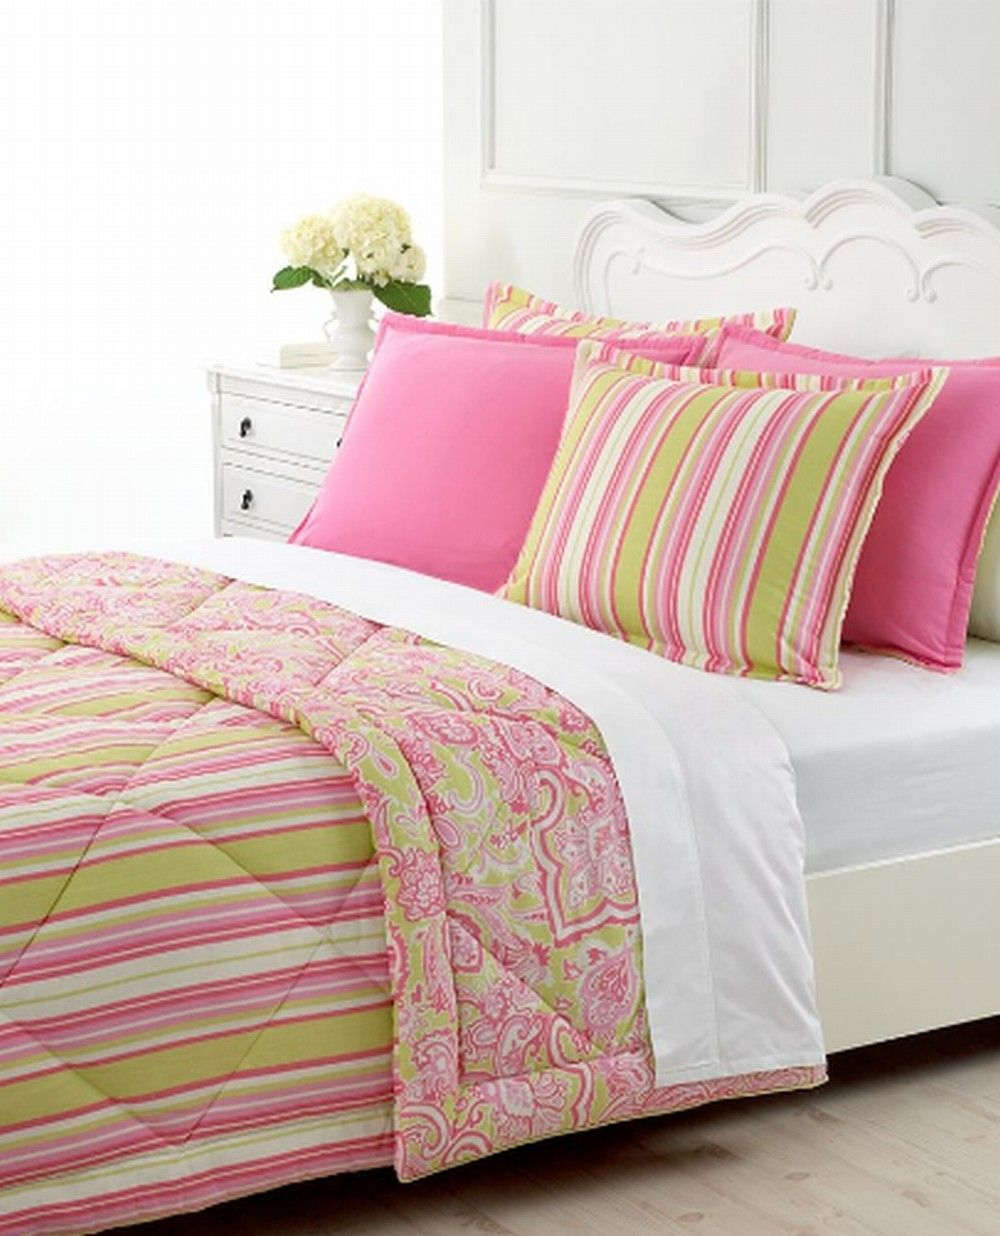 Martha Stewart pink and green bedding | Green comforter, Pink